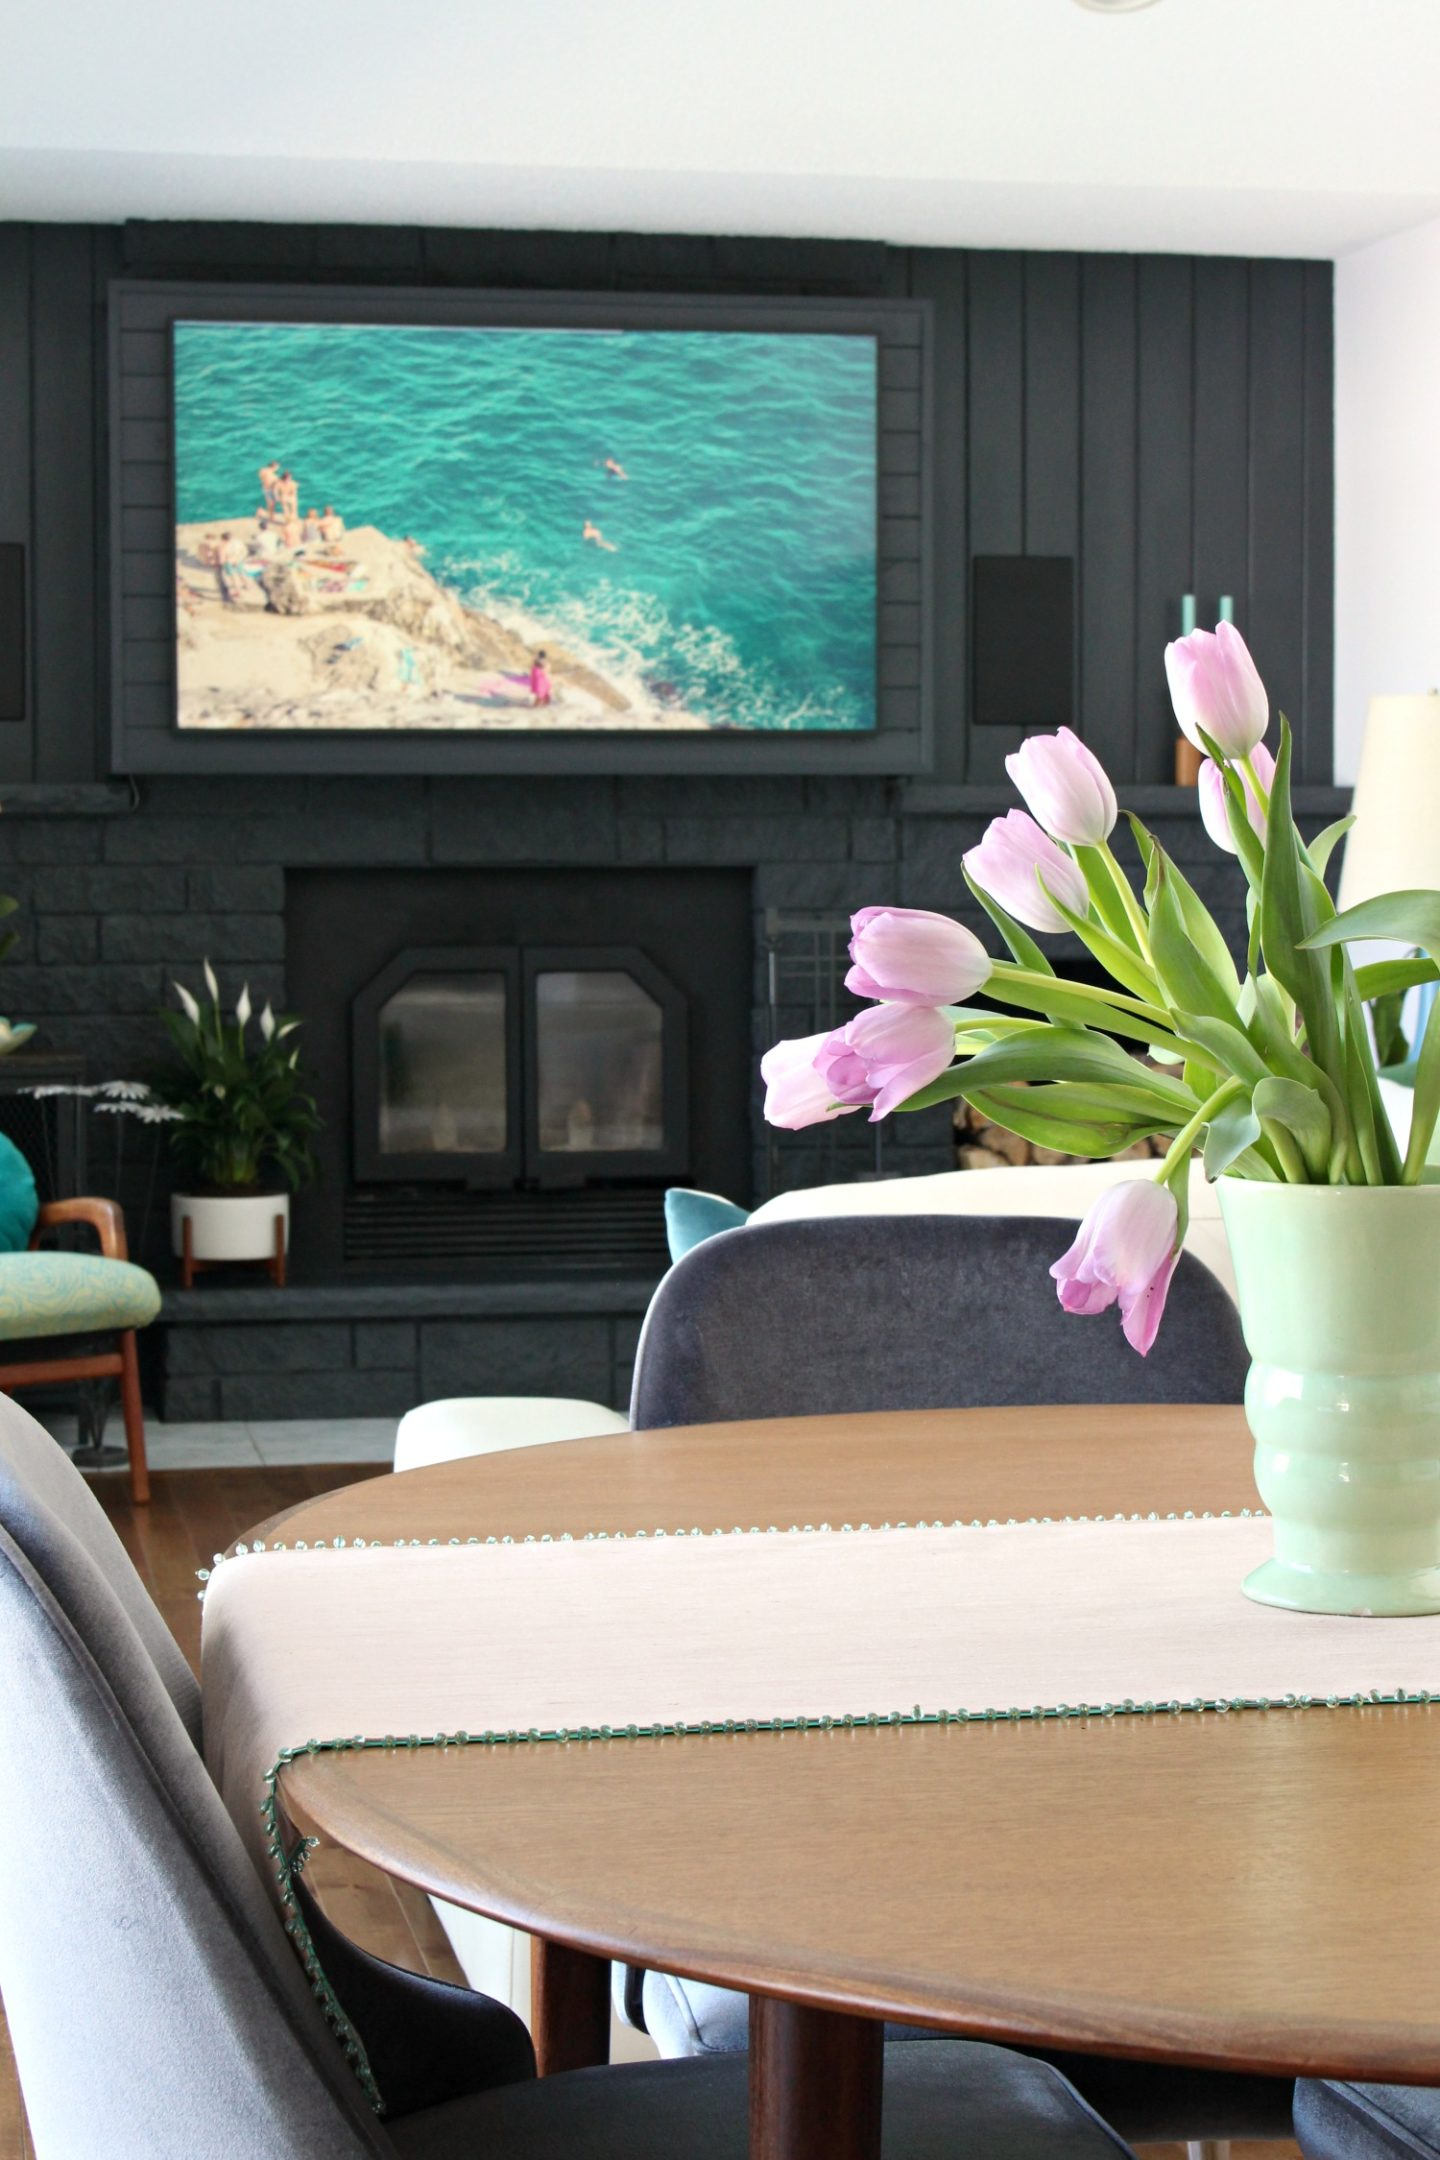 Simple Lake House Spring Home Tour with Vintage Meets Modern Coastal Style #springhometour #springdecor #hometour #lakehouse #moderncoastal